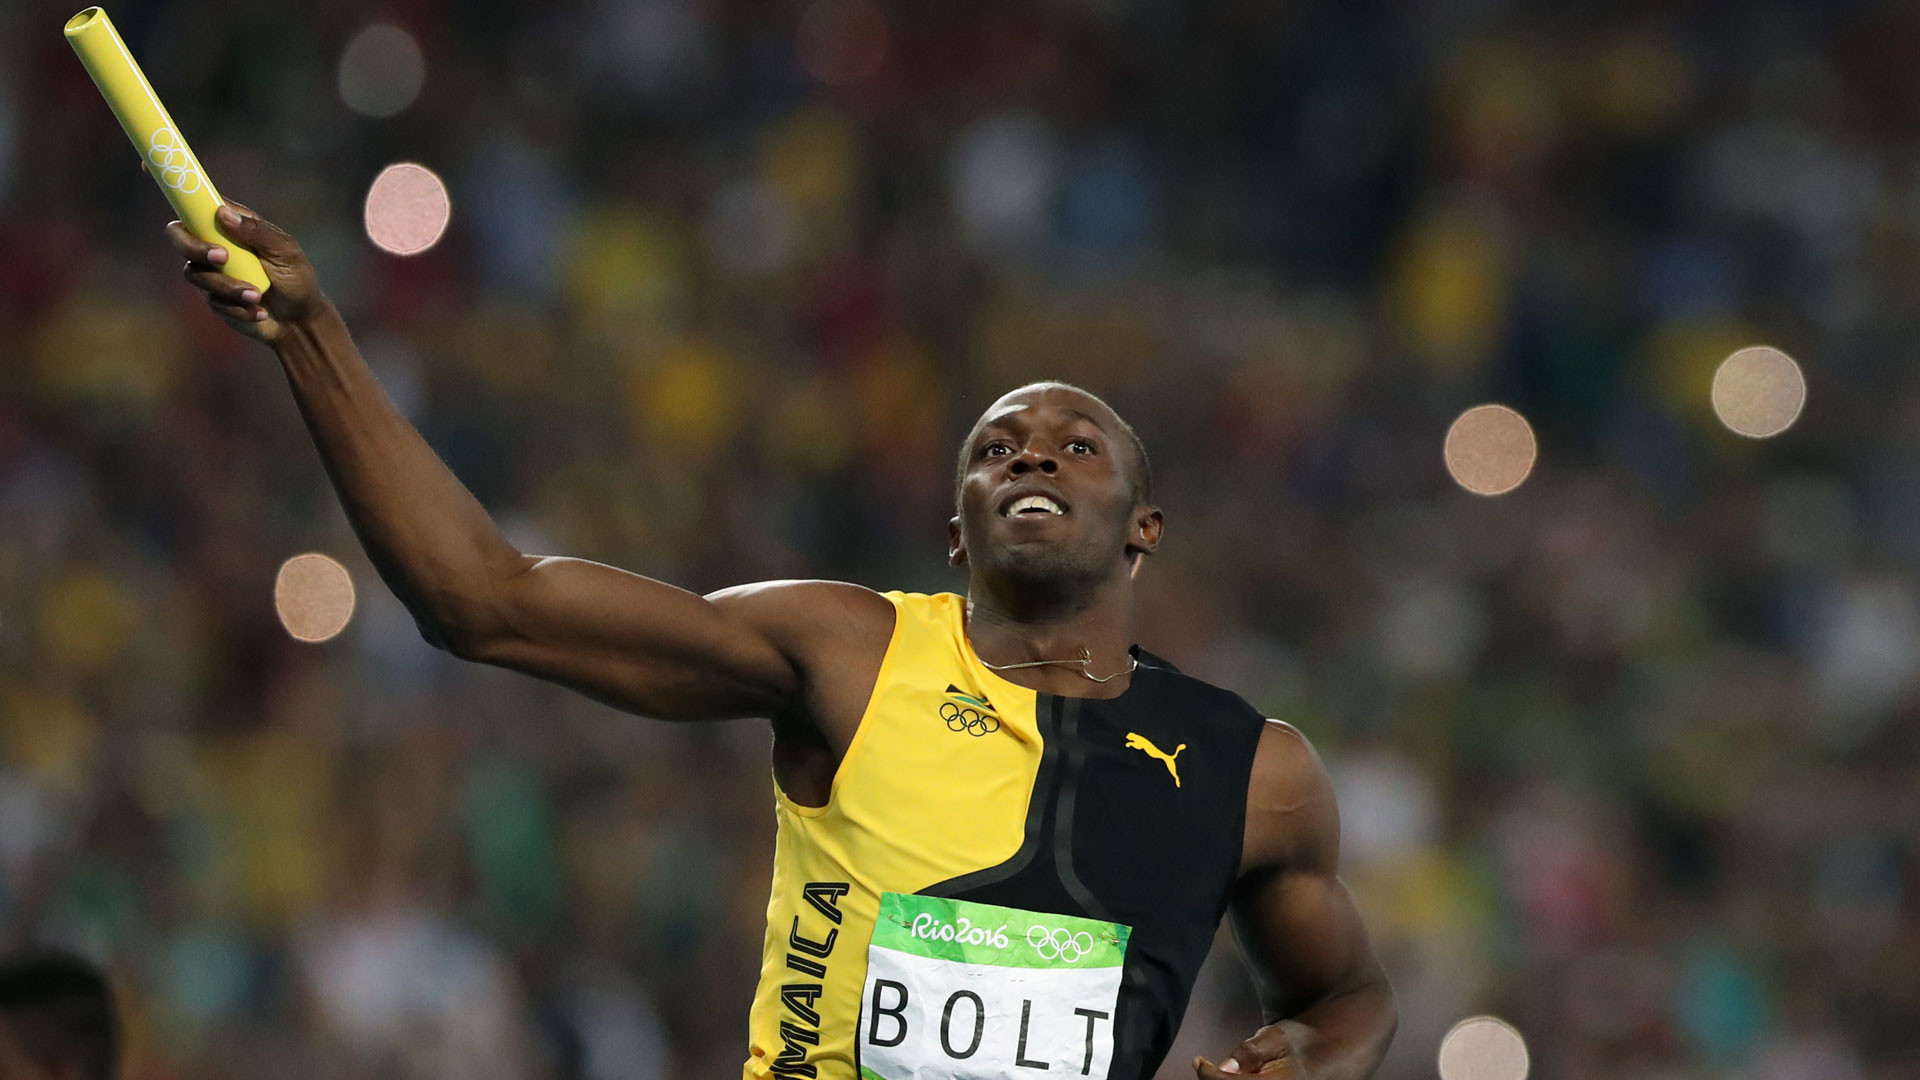 1920x1080 Usain Bolt wins 4x100m gold medal in his final Olympic race | NBC Olympics